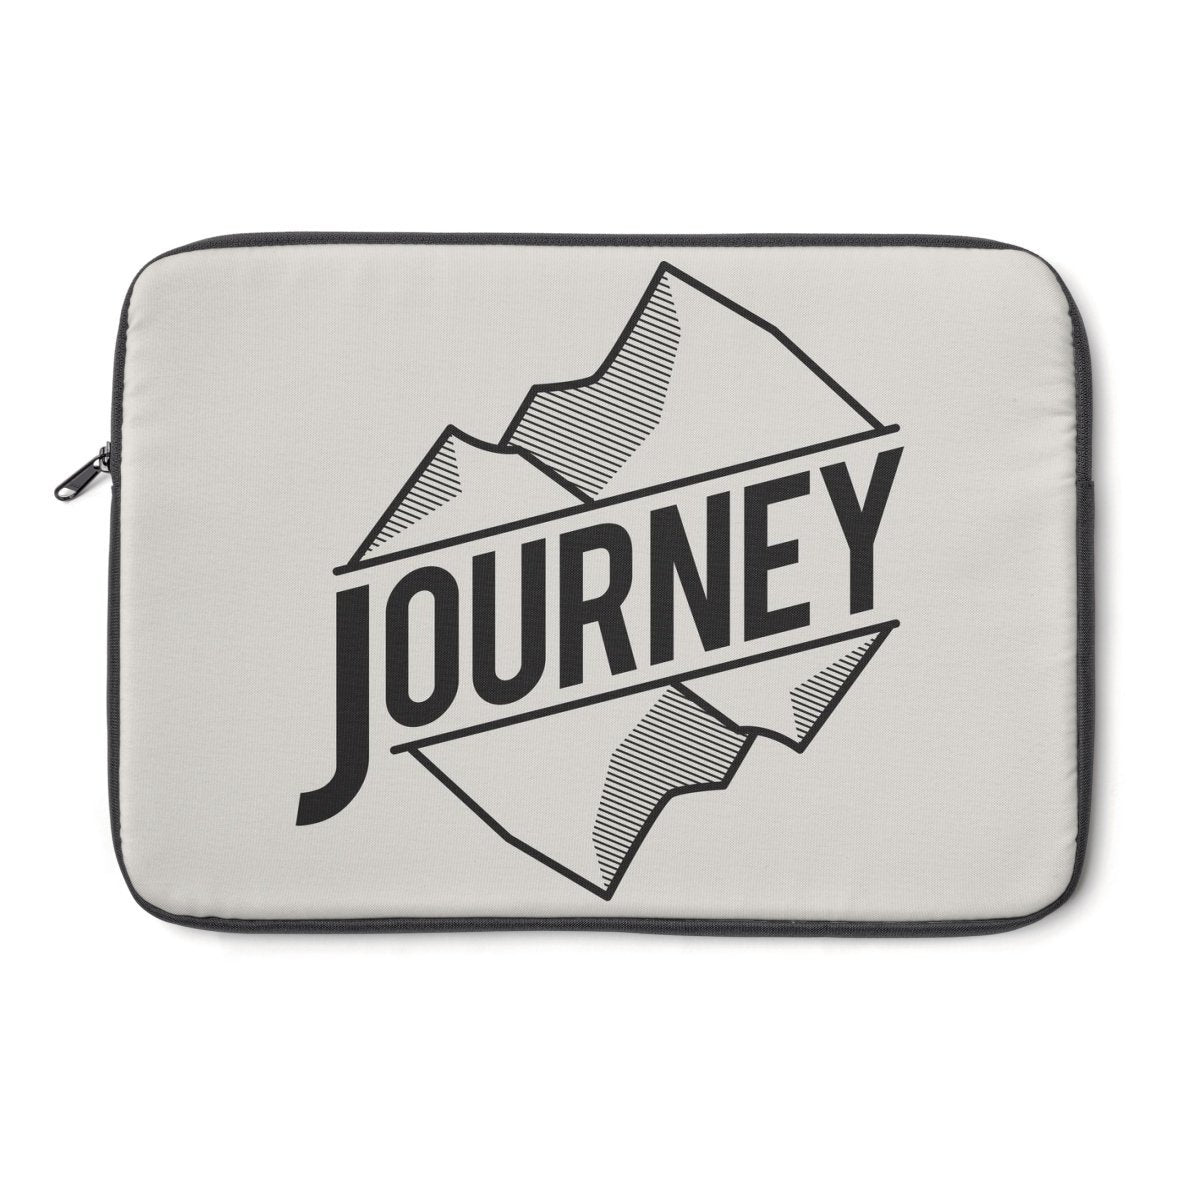 Journey travel Laptop Sleeve-Tech - Accessories - Laptop Sleeves-Printify-Très Elite